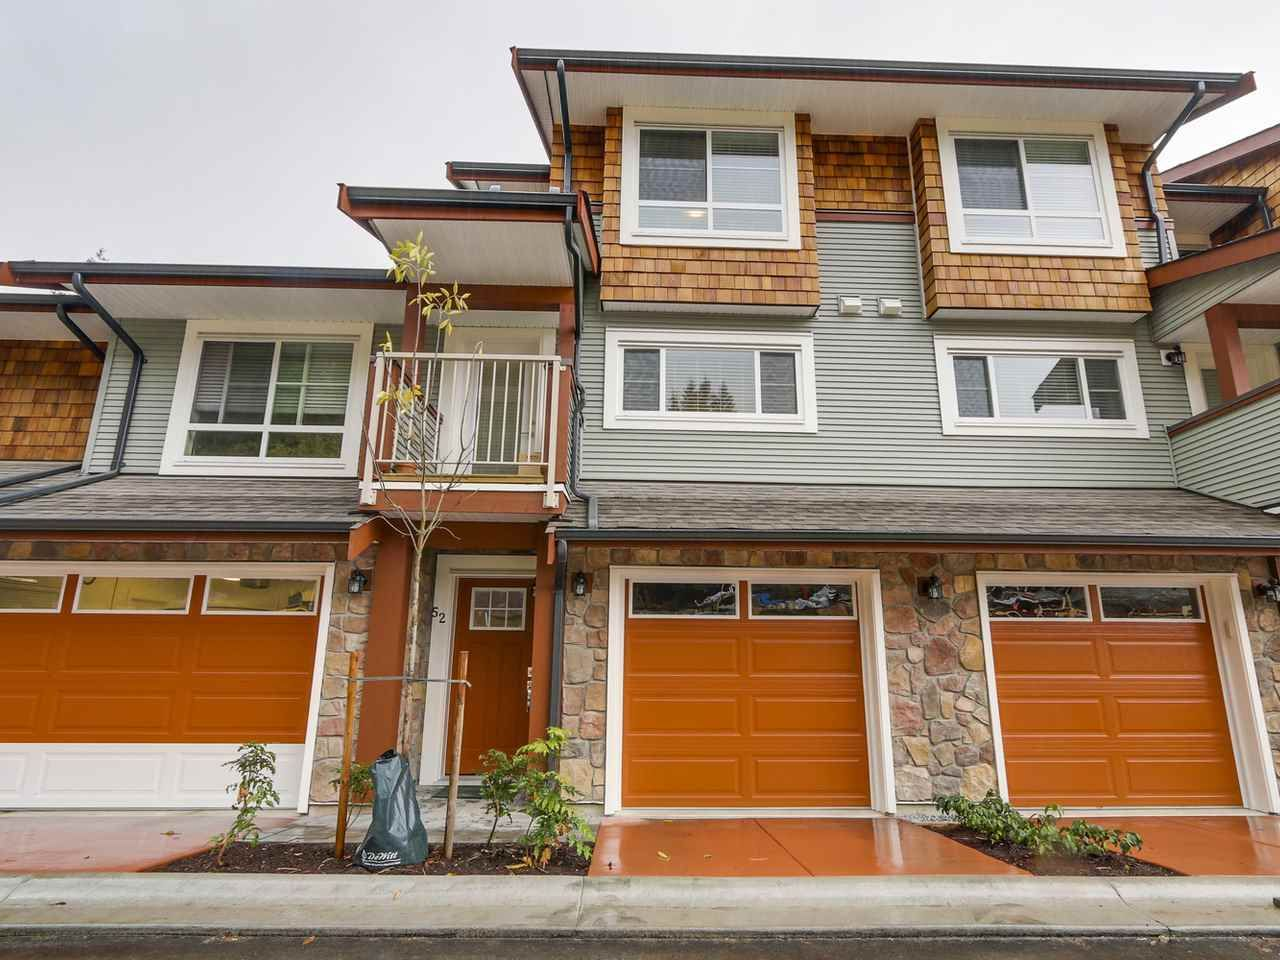 """Main Photo: 52 23651 132 Avenue in Maple Ridge: Silver Valley Townhouse for sale in """"MYRON'S MUSE"""" : MLS®# R2130143"""